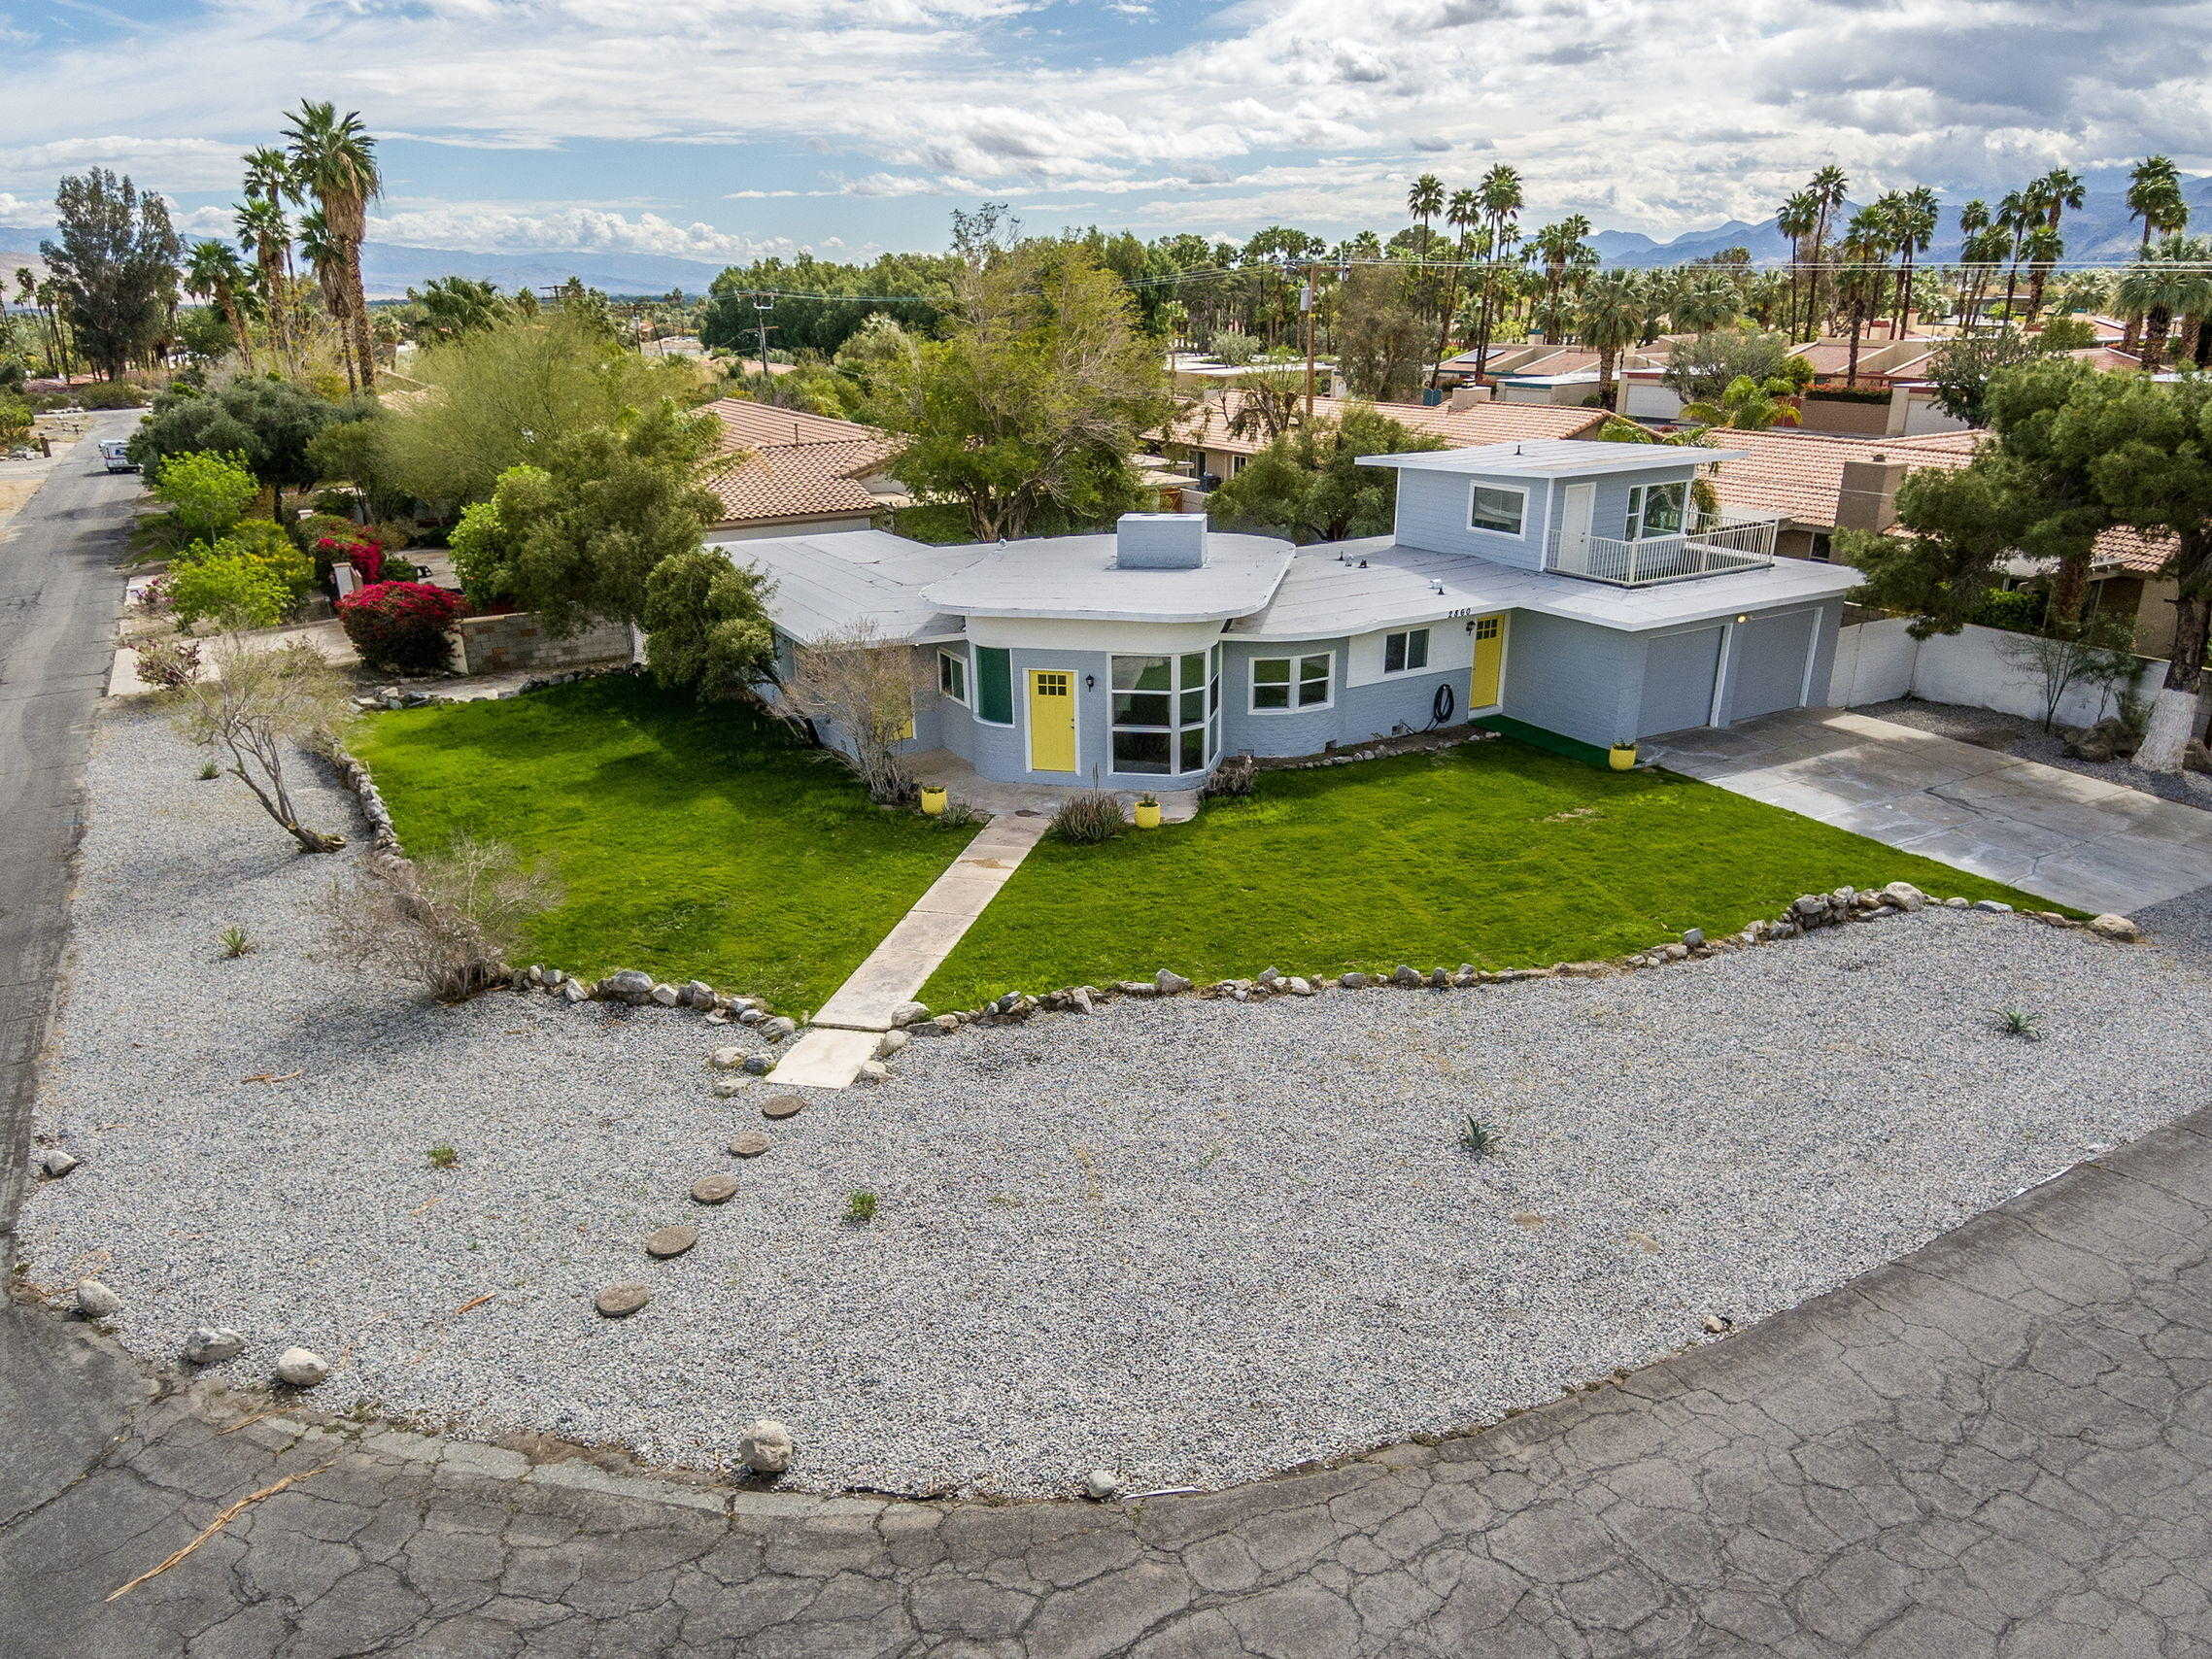 $648,500 - 3Br/3Ba -  for Sale in Racquet Club West, Palm Springs